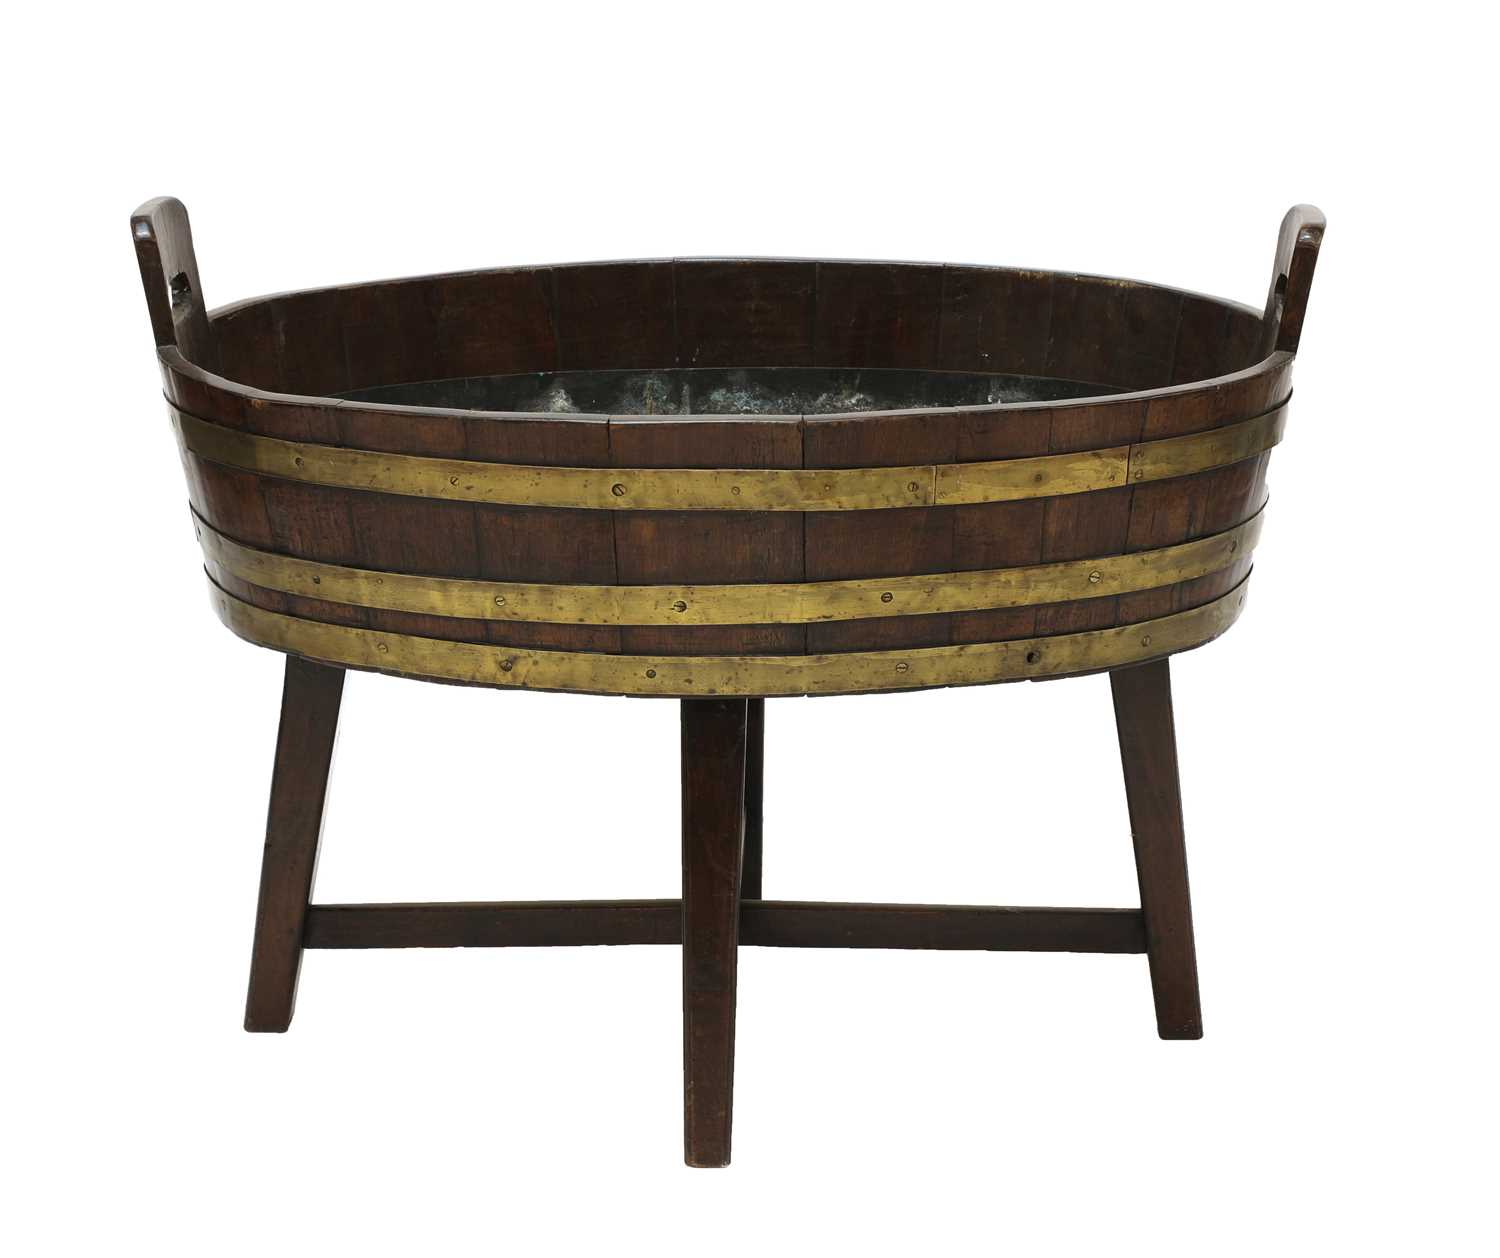 A George III mahogany oval brass-bound wine cooler, - Image 3 of 4